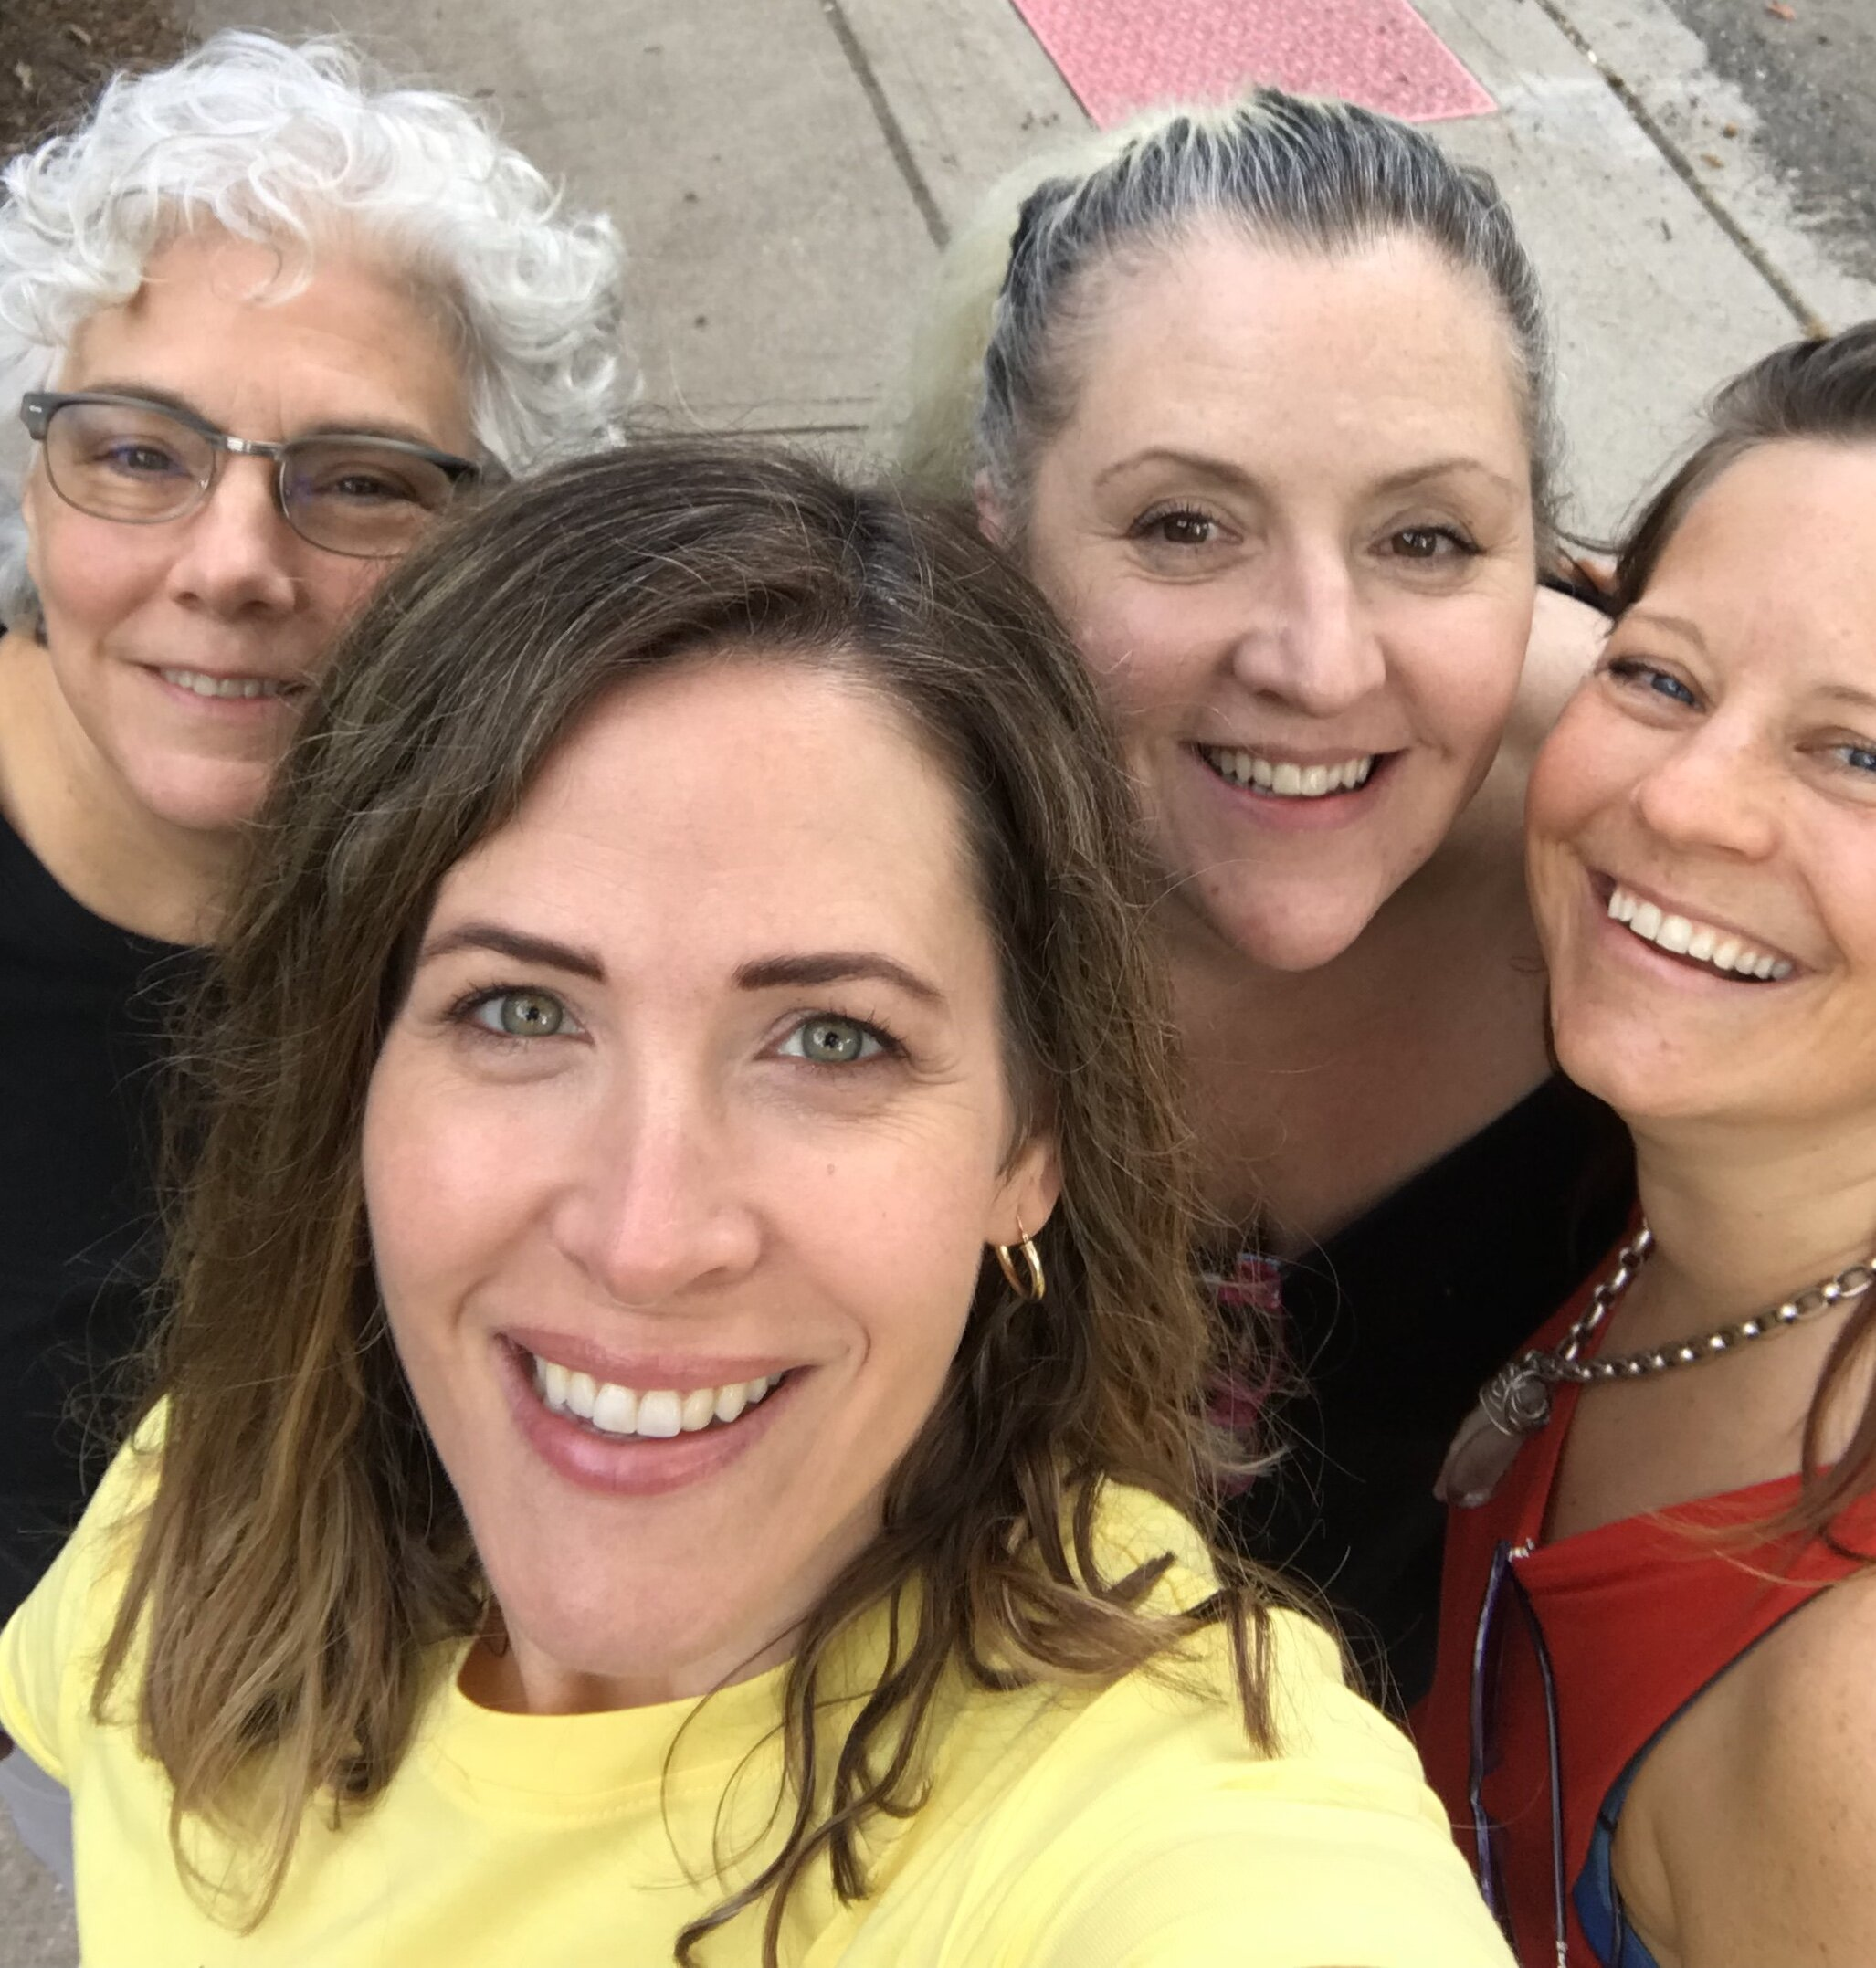 Here I am during an artist mastermind weekend with three of my artist support system. These women are amazing artists and have been key in helping me grow my art business.